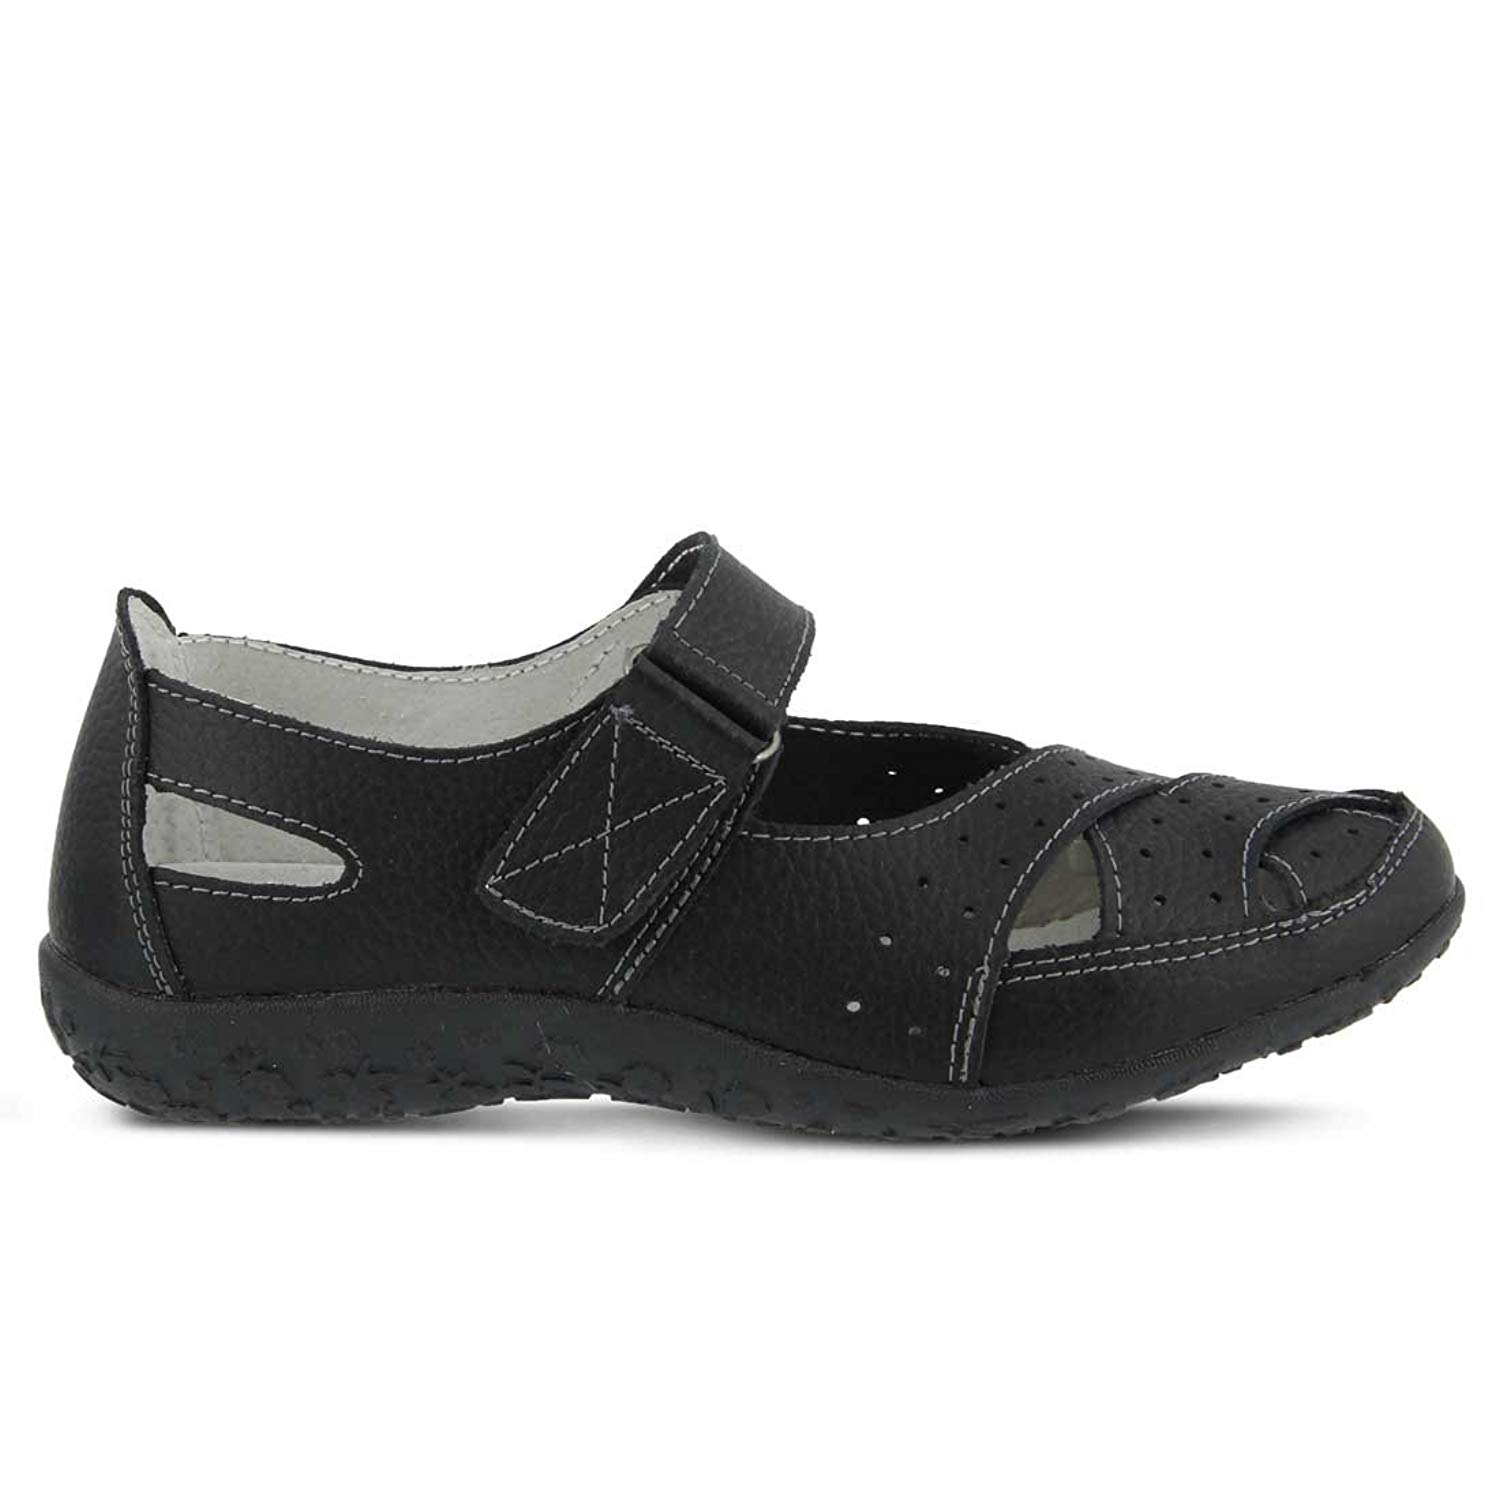 0 Women's 10 Uk Streetwise Spring Leather Sandals Step Black 8 Us Size 5wUqp8w